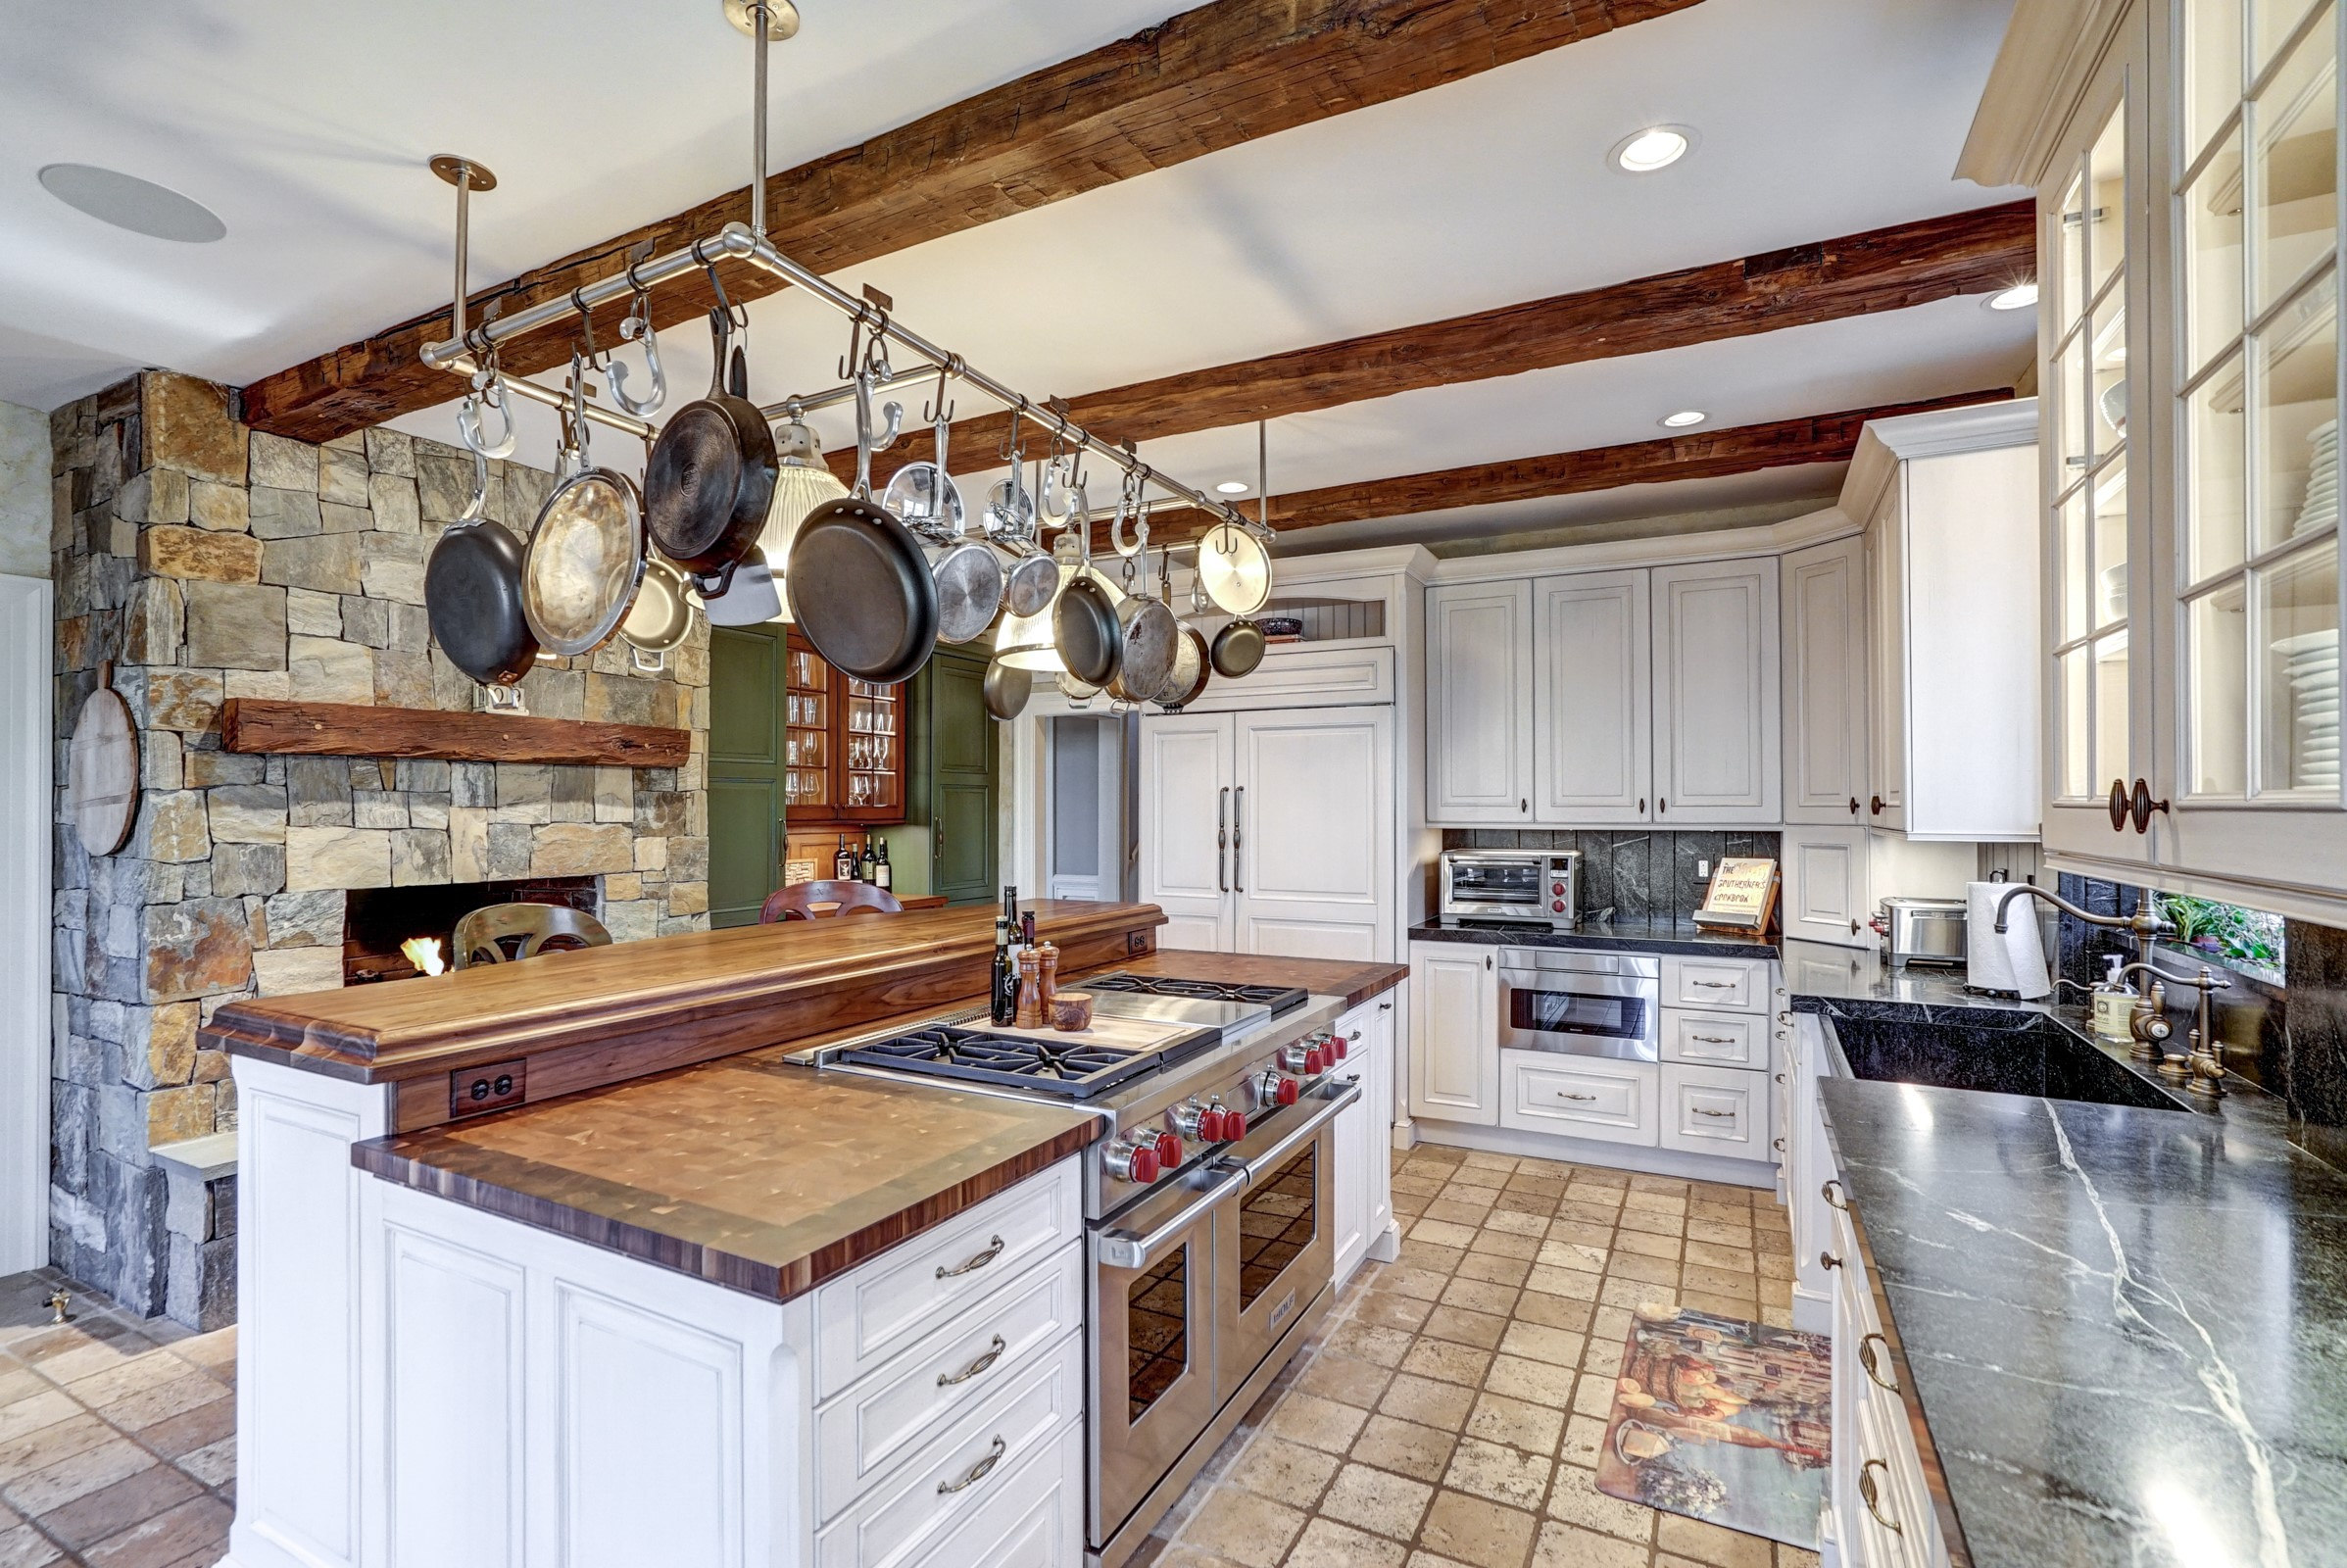 Etonnant Custom Walnut Wood Backsplash Connects The Upper And Lower Levels Of The  Kitchen Island